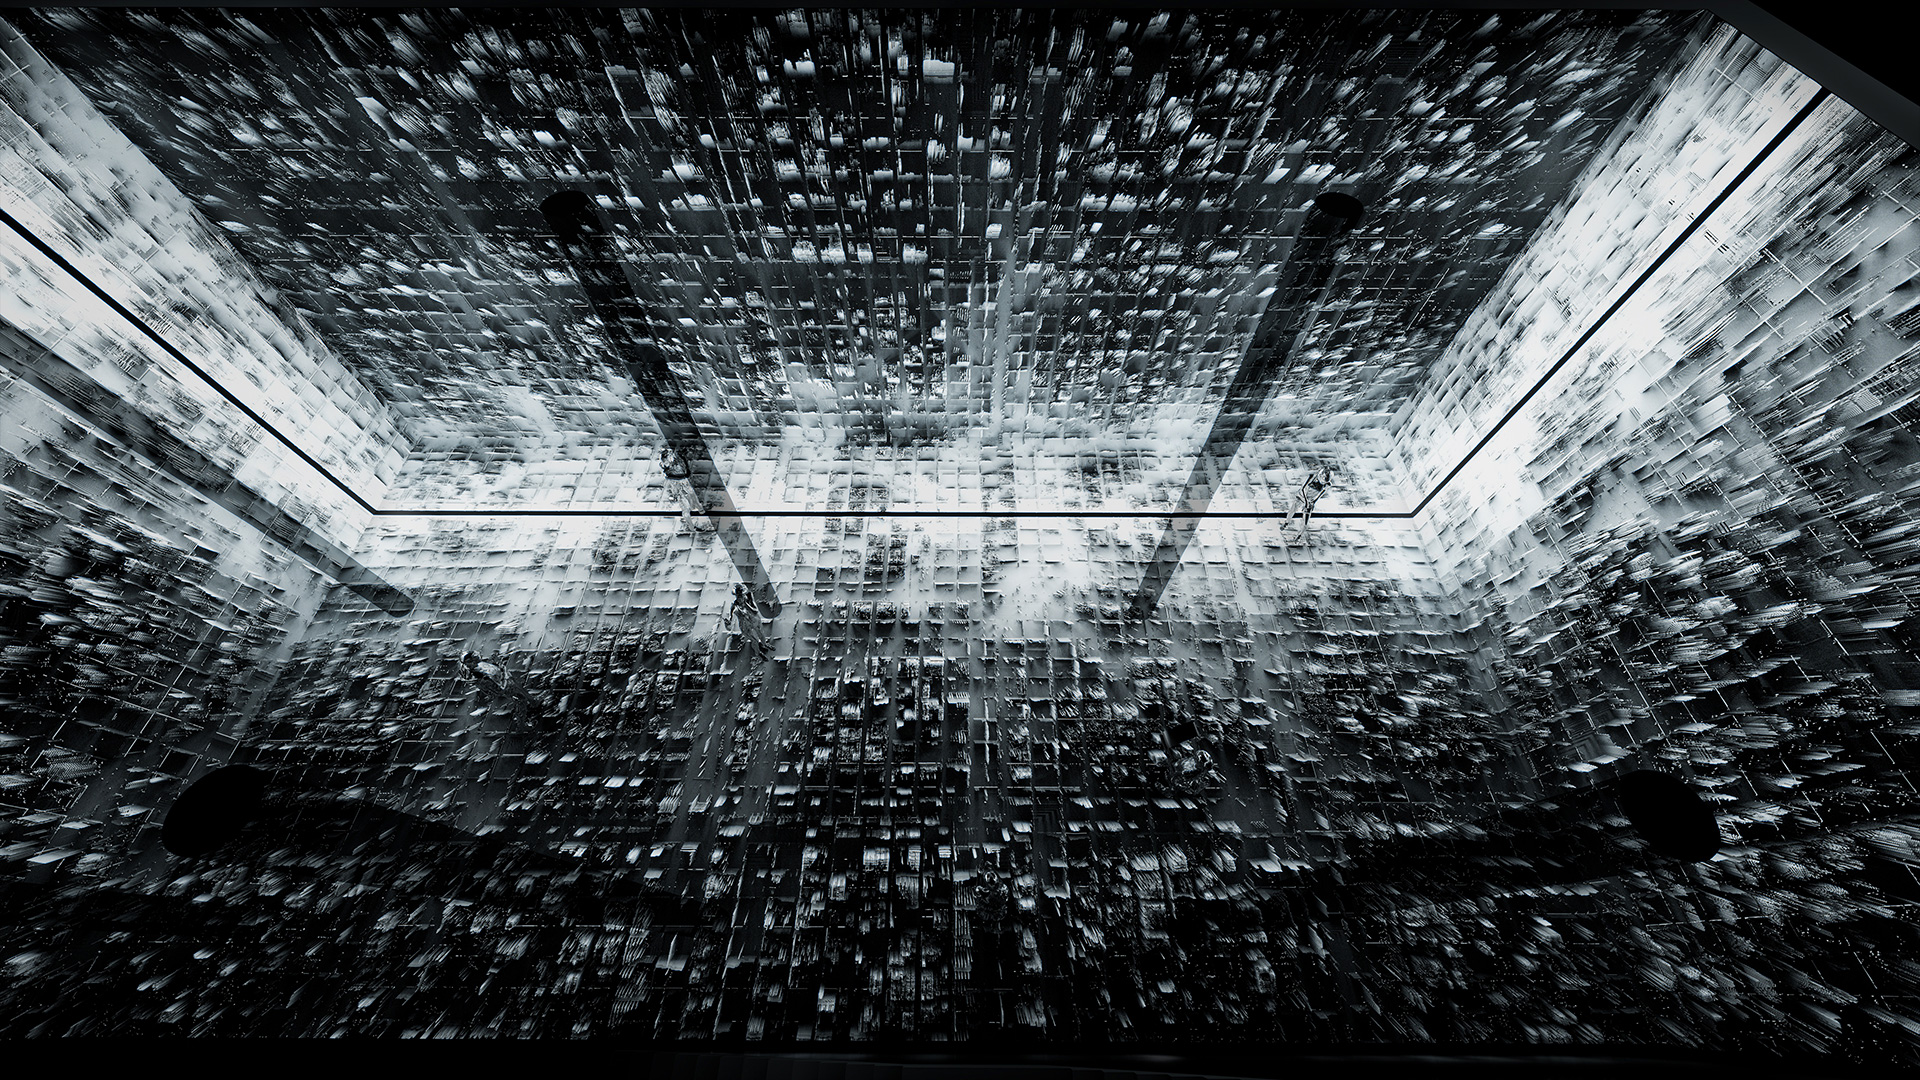 Still 2, Machine Hallucination| Machine Hallucination| Refik Anadol| Artechouse| STIR